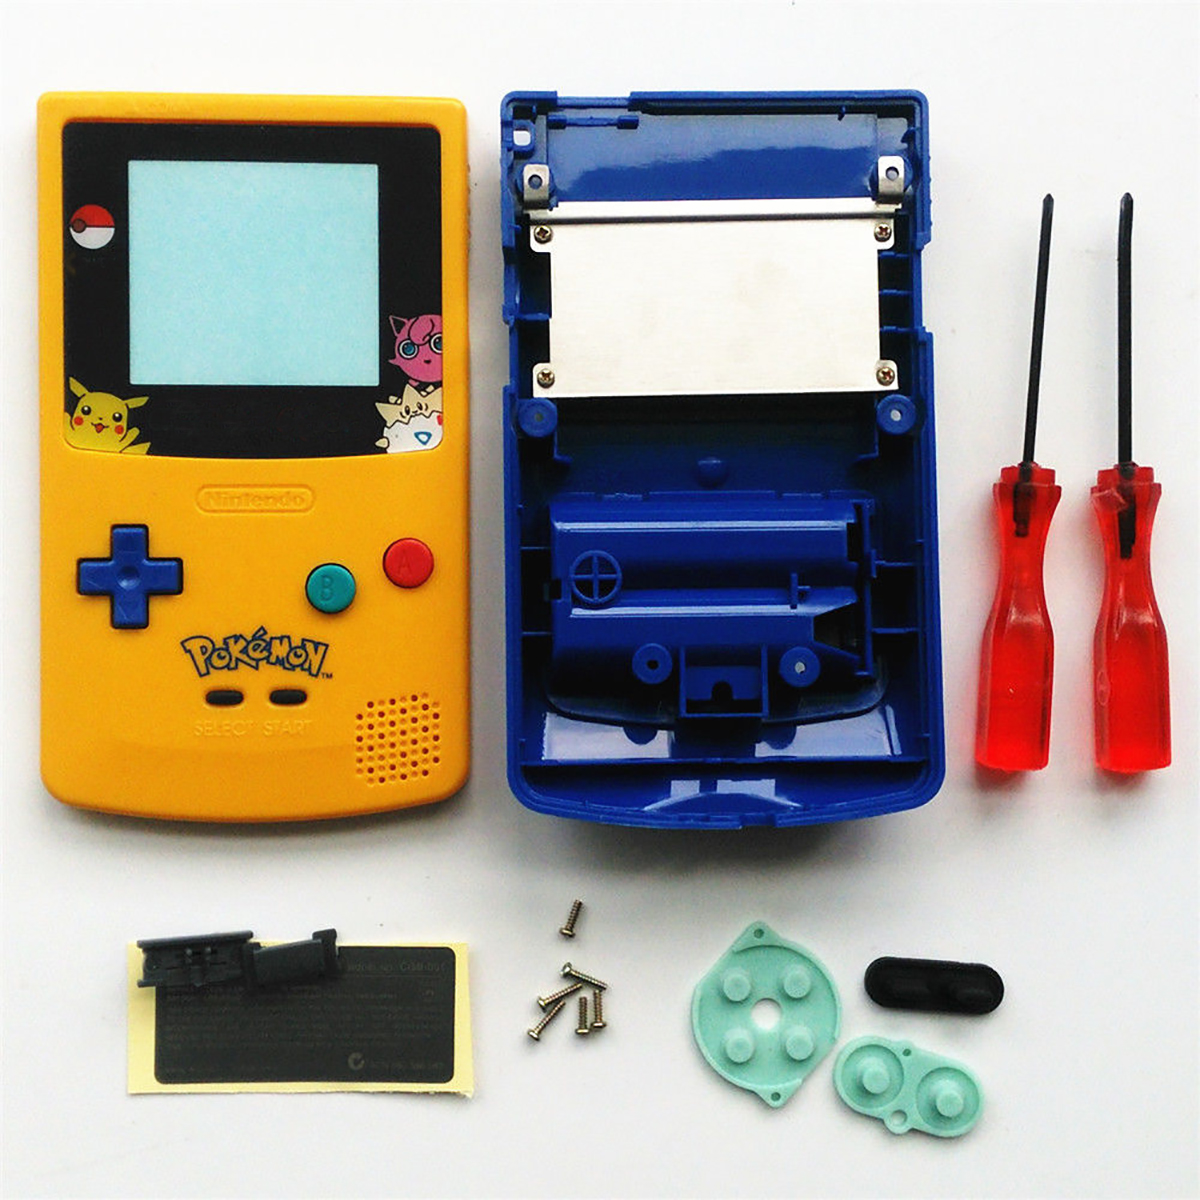 New Full Housing Shell Cover Repair Part Housing Shell Pack for Nintendo Game boy Color GBC